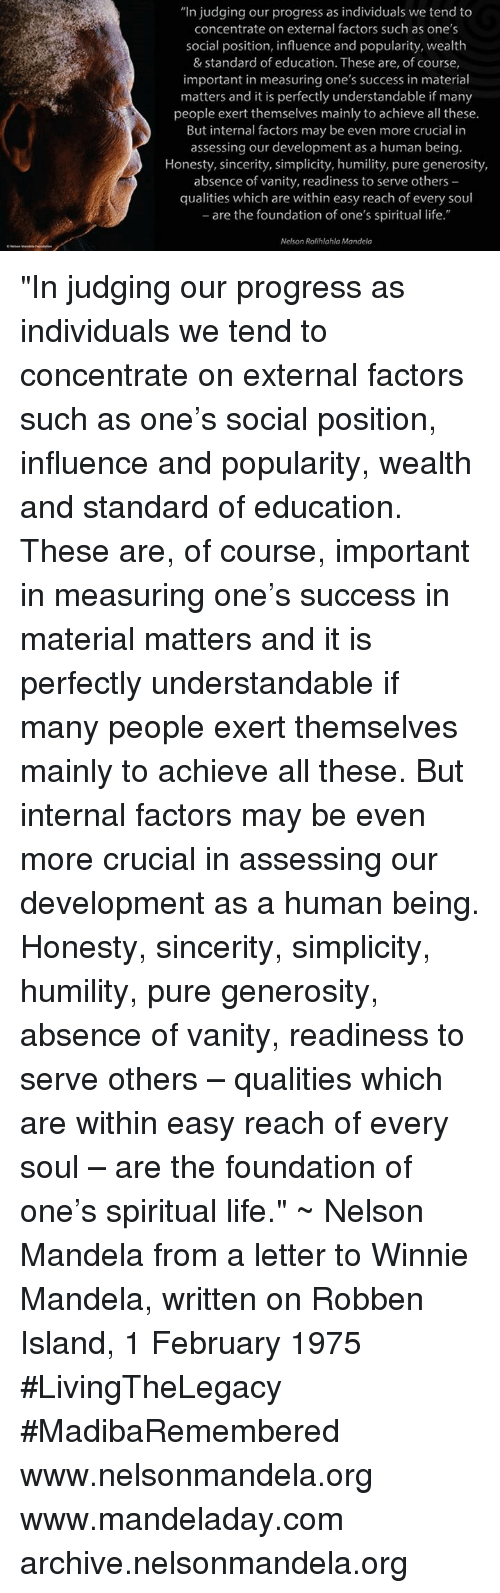 """Materialism: """"In judging our progress as individuals we tend to  concentrate on external factors such as one's  social position, influence and popularity, wealth  & Standard of education. These are, of course,  important in measuring one's success in material  matters and it is perfectly understandable if many  people exert themselves mainly to achieve all these.  But internal factors may be even more crucial in  assessing our development as a human being.  Honesty, sincerity, simplicity, humility, pure generosity,  absence of vanity, readiness to serve others  qualities which are within easy reach of every soul  -are the foundation of one's spiritual life.""""  Nelson Rolihlahla Mandela """"In judging our progress as individuals we tend to concentrate on external factors such as one's social position, influence and popularity, wealth and standard of education. These are, of course, important in measuring one's success in material matters and it is perfectly understandable if many people exert themselves mainly to achieve all these. But internal factors may be even more crucial in assessing our development as a human being. Honesty, sincerity, simplicity, humility, pure generosity, absence of vanity, readiness to serve others – qualities which are within easy reach of every soul – are the foundation of one's spiritual life."""" ~ Nelson Mandela from a letter to Winnie Mandela, written on Robben Island, 1 February 1975 #LivingTheLegacy #MadibaRemembered   www.nelsonmandela.org www.mandeladay.com archive.nelsonmandela.org"""